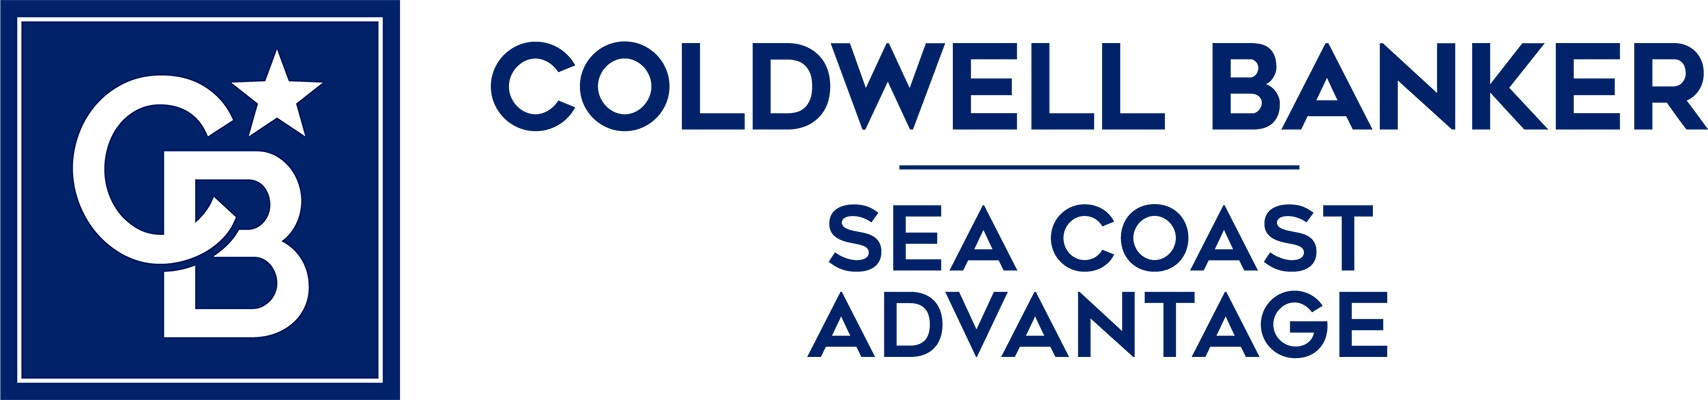 April Swafford - Coldwell Banker Sea Coast Advantage Realty